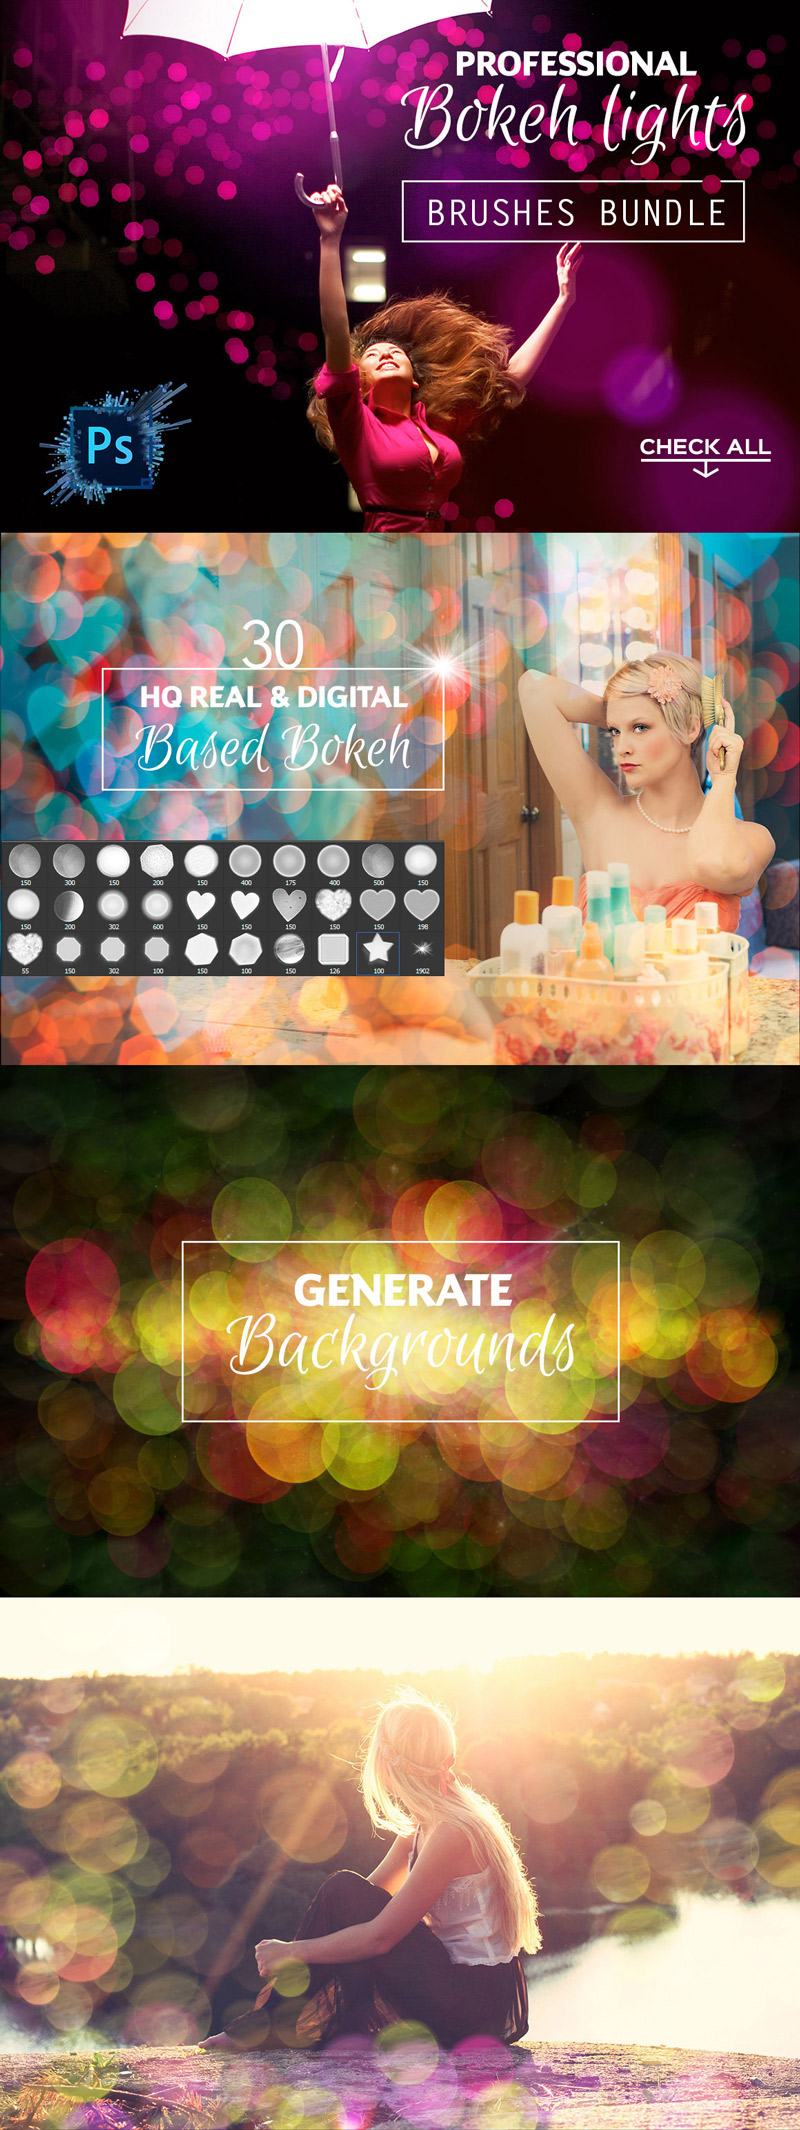 magic-photoshop-toolbox-preview-17